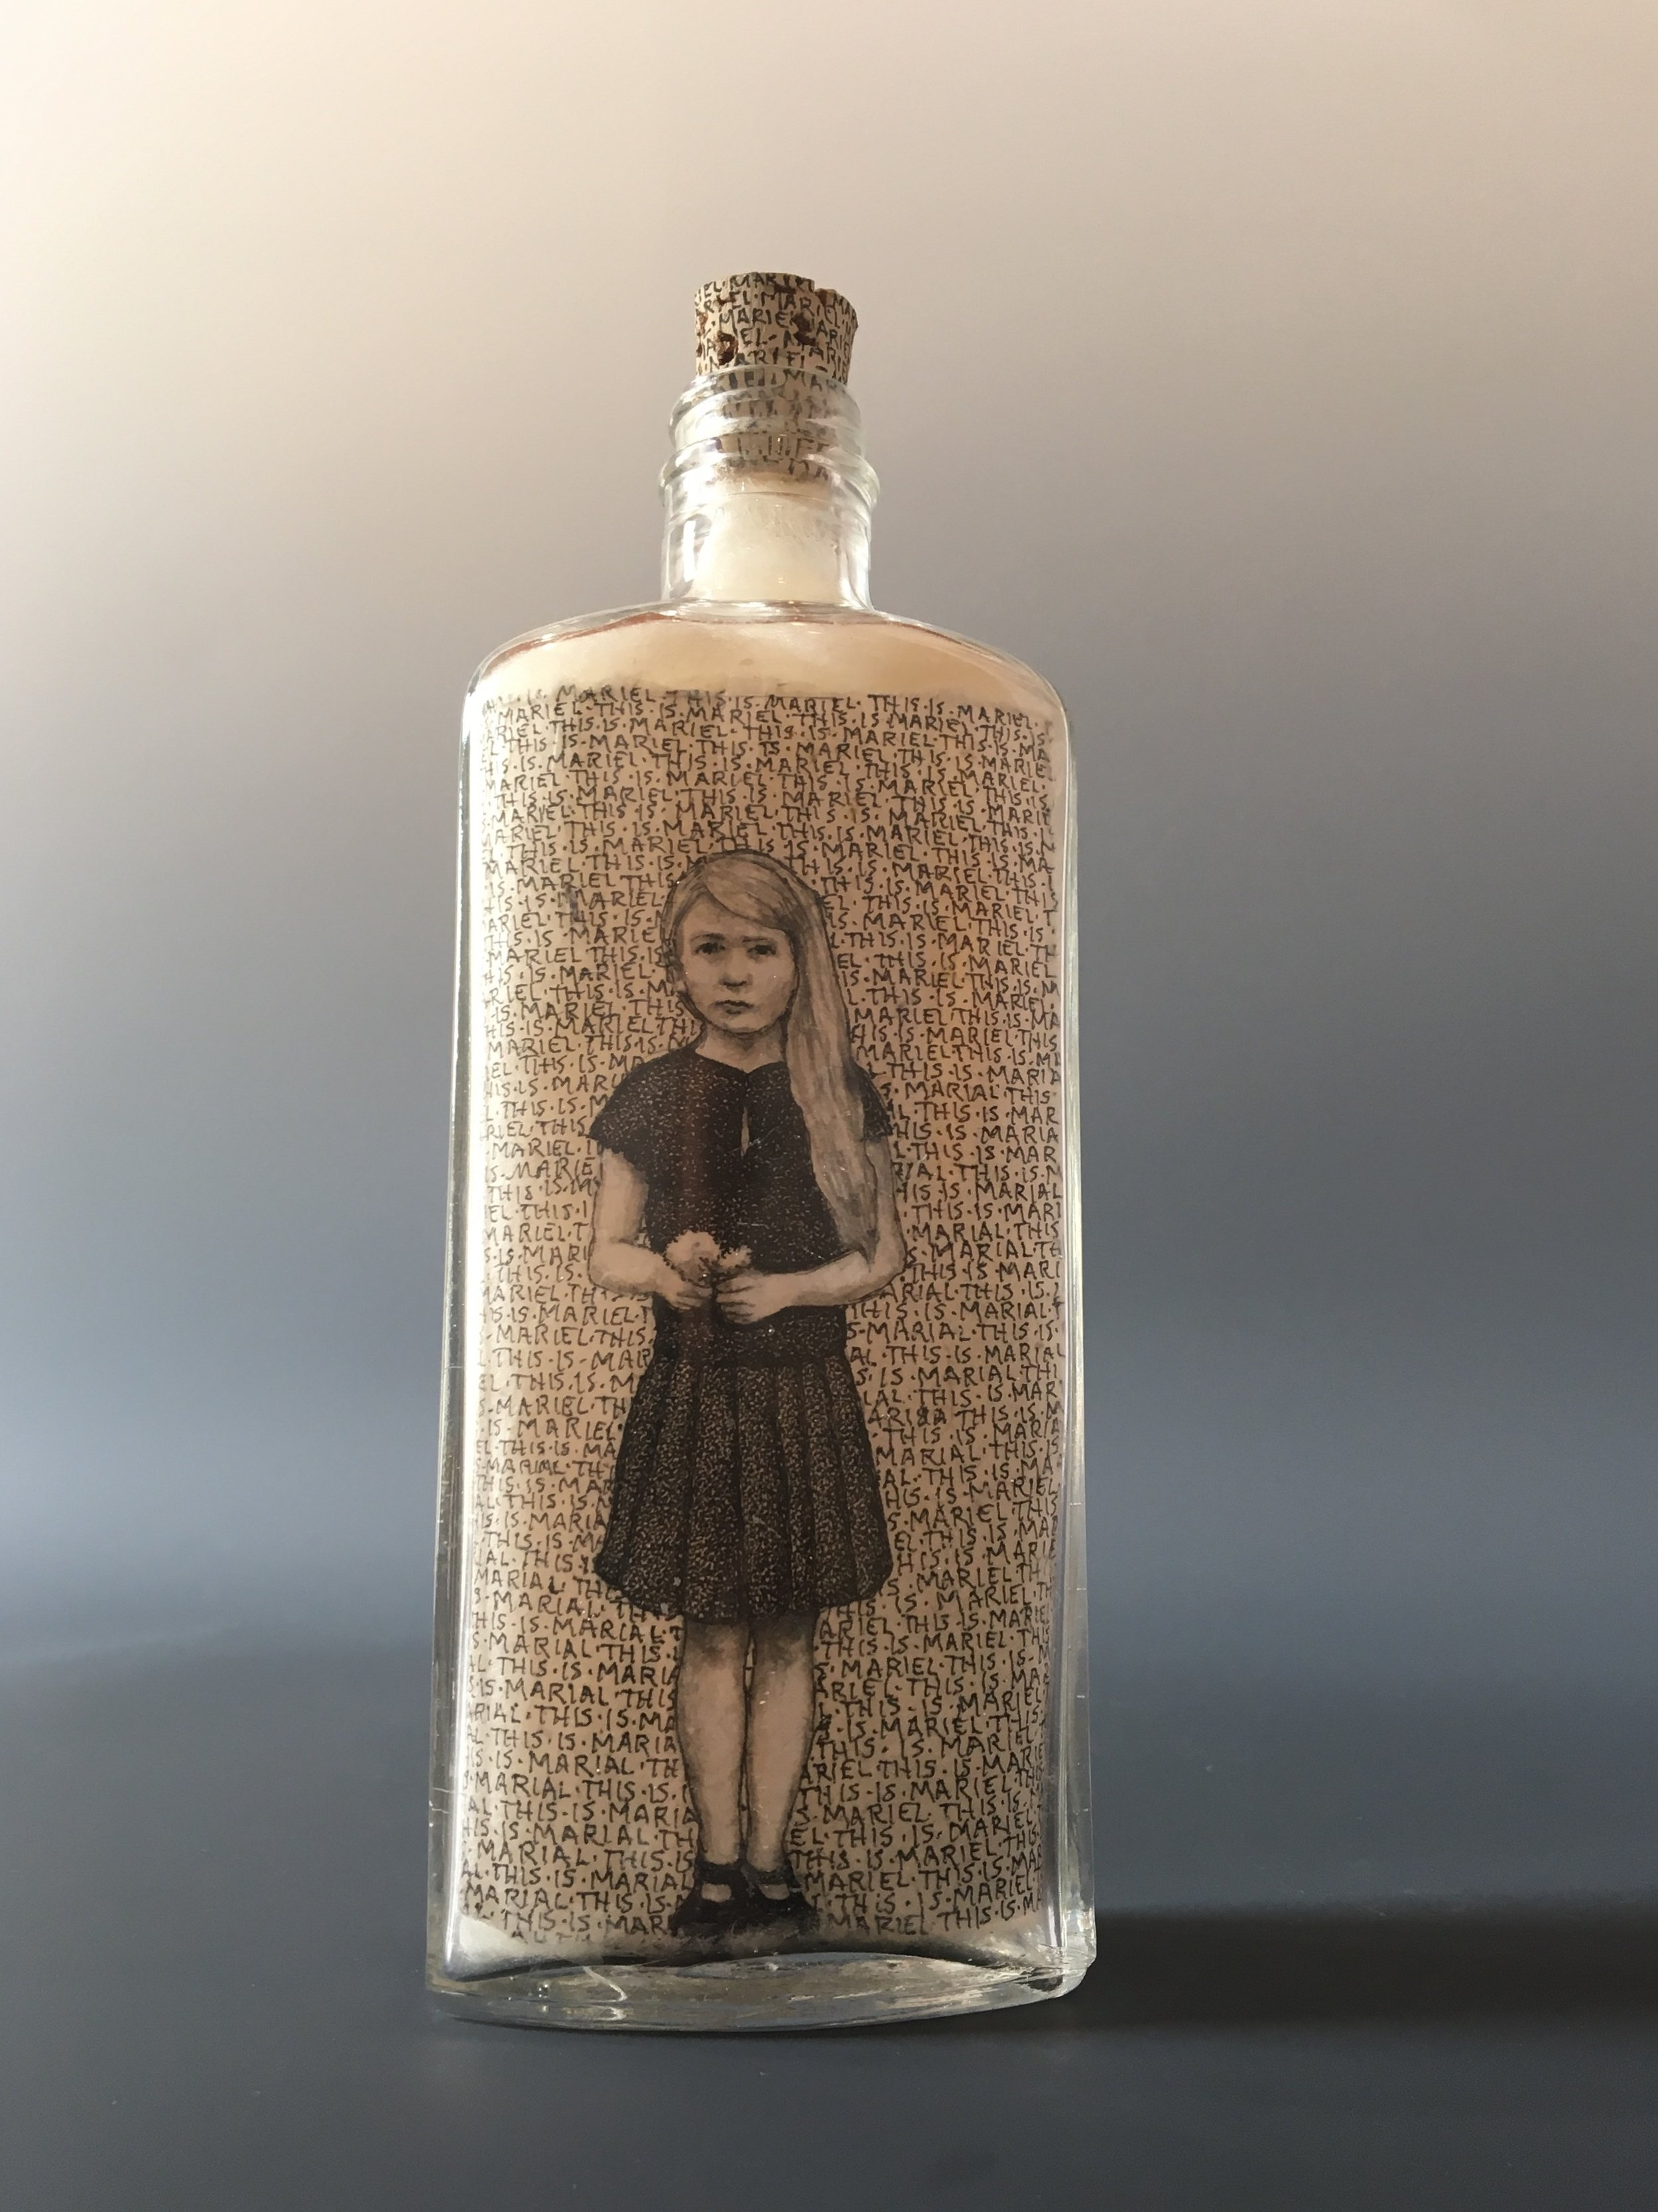 This is Mariel Playing a Part  bottle drawing; ink, graphite, white charcoal on handmade paper, glass bottle, wool